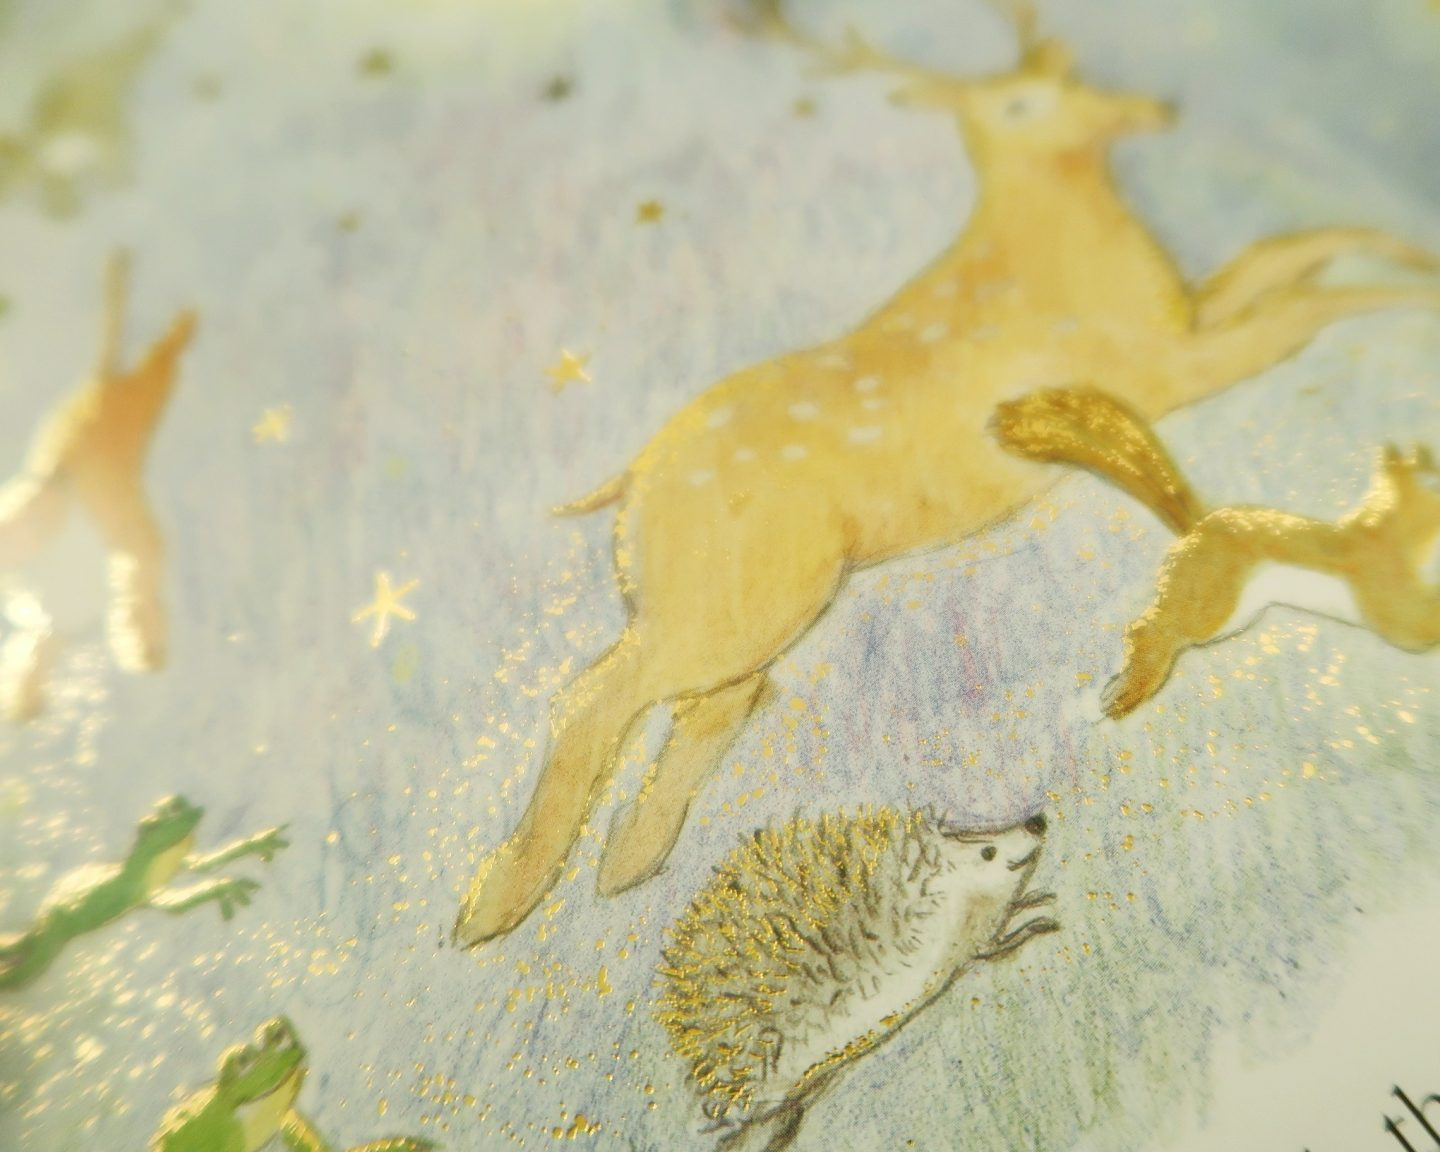 Katinka's Tail - Close up of illustration from Katinka's Tail - a deer and a hedgehog